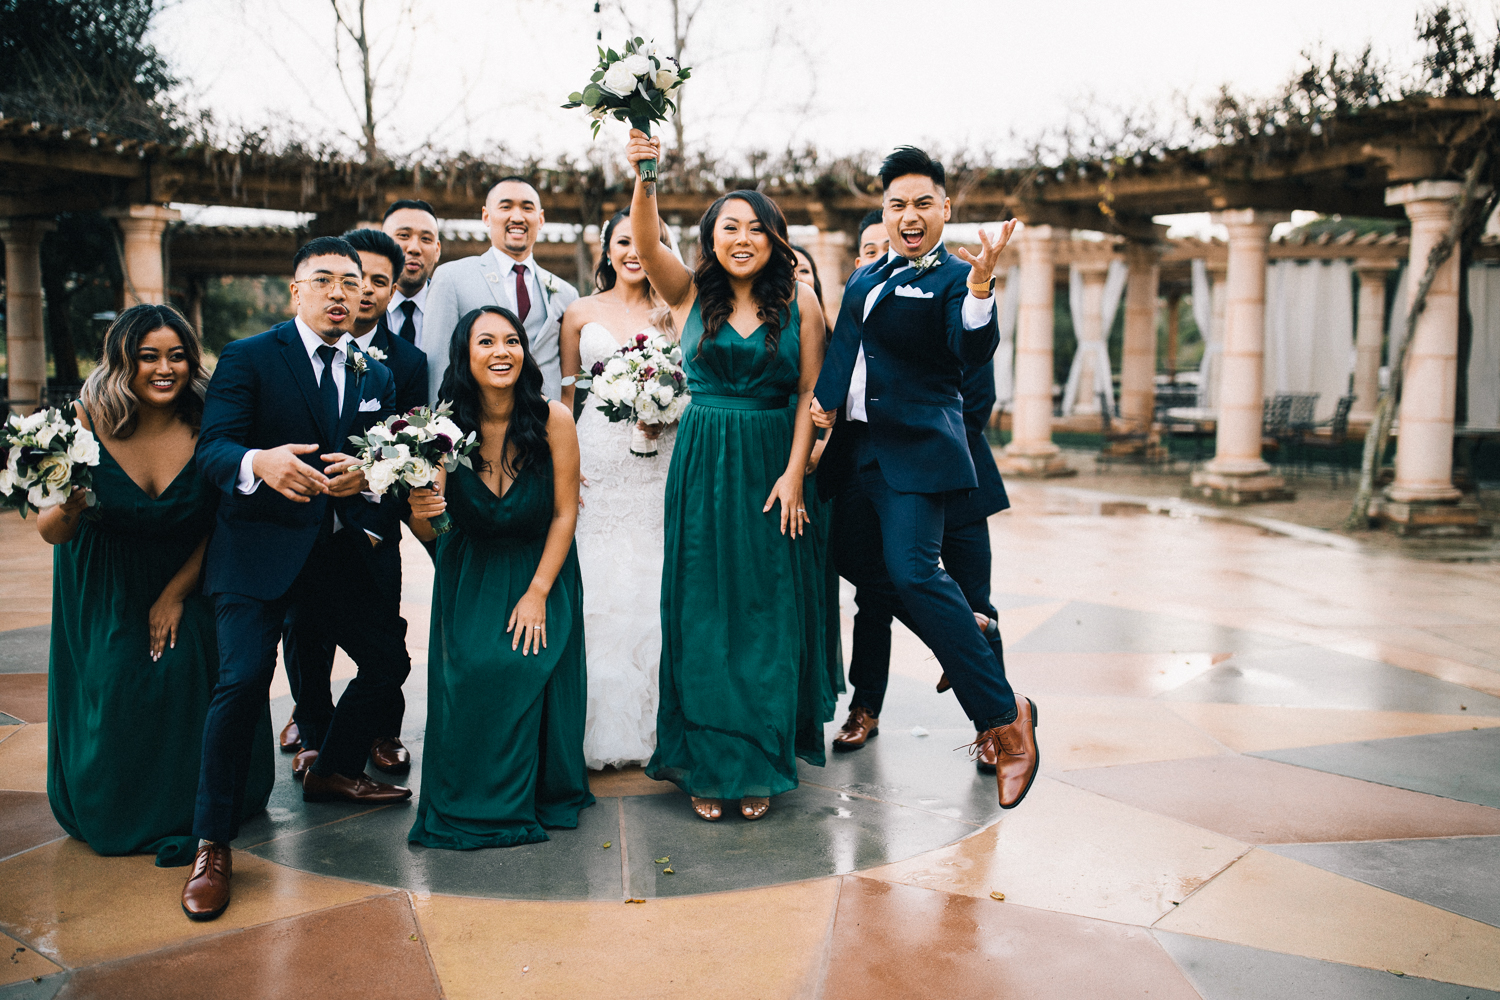 2019_01_ 202019.01.20 Santiago Wedding Blog Photos Edited For Web 0065.jpg